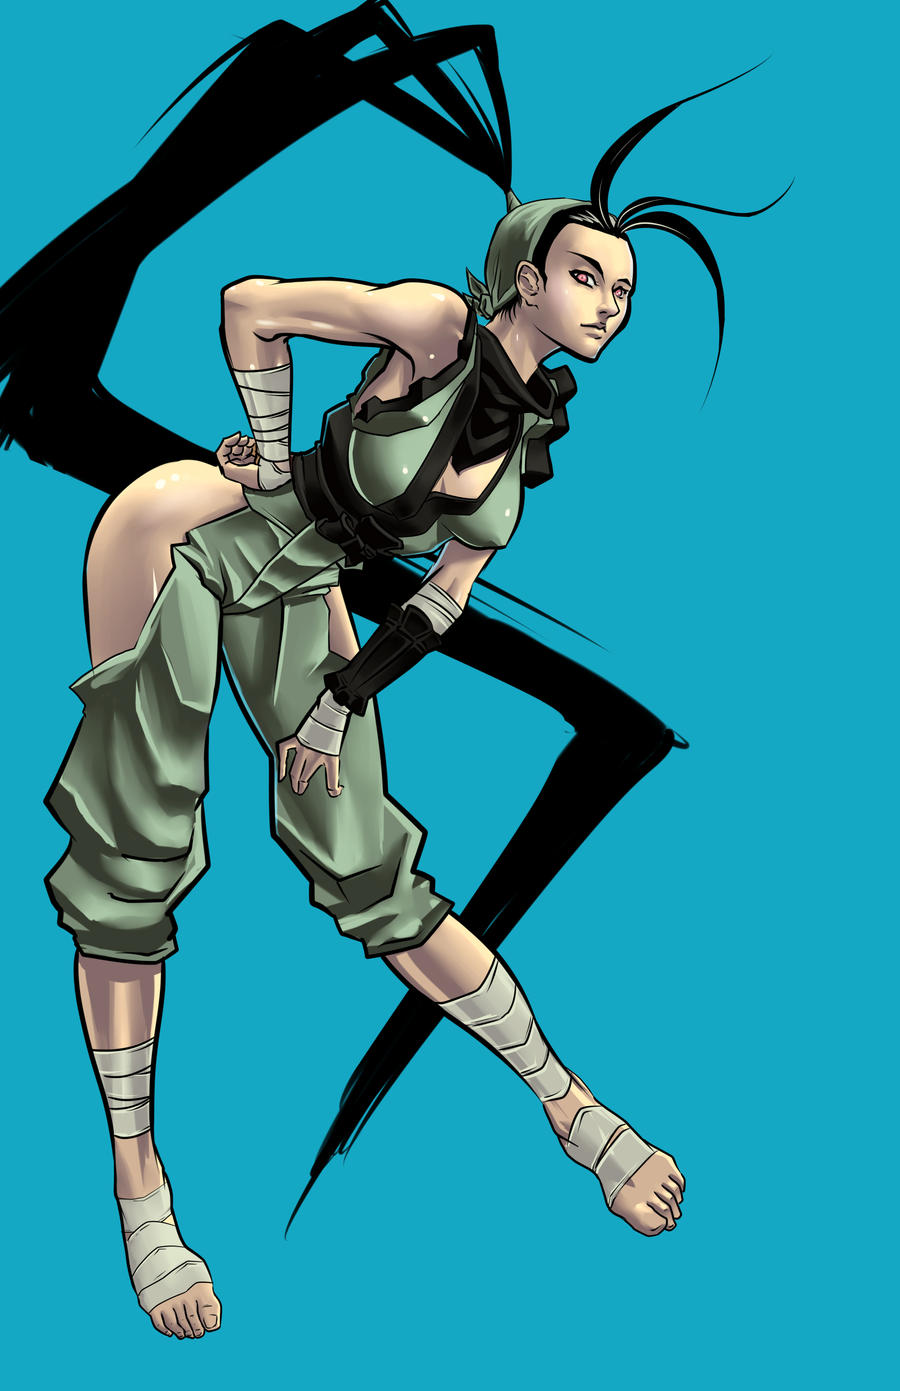 Ibuki Street Fighter Art Jam by JohanneLight